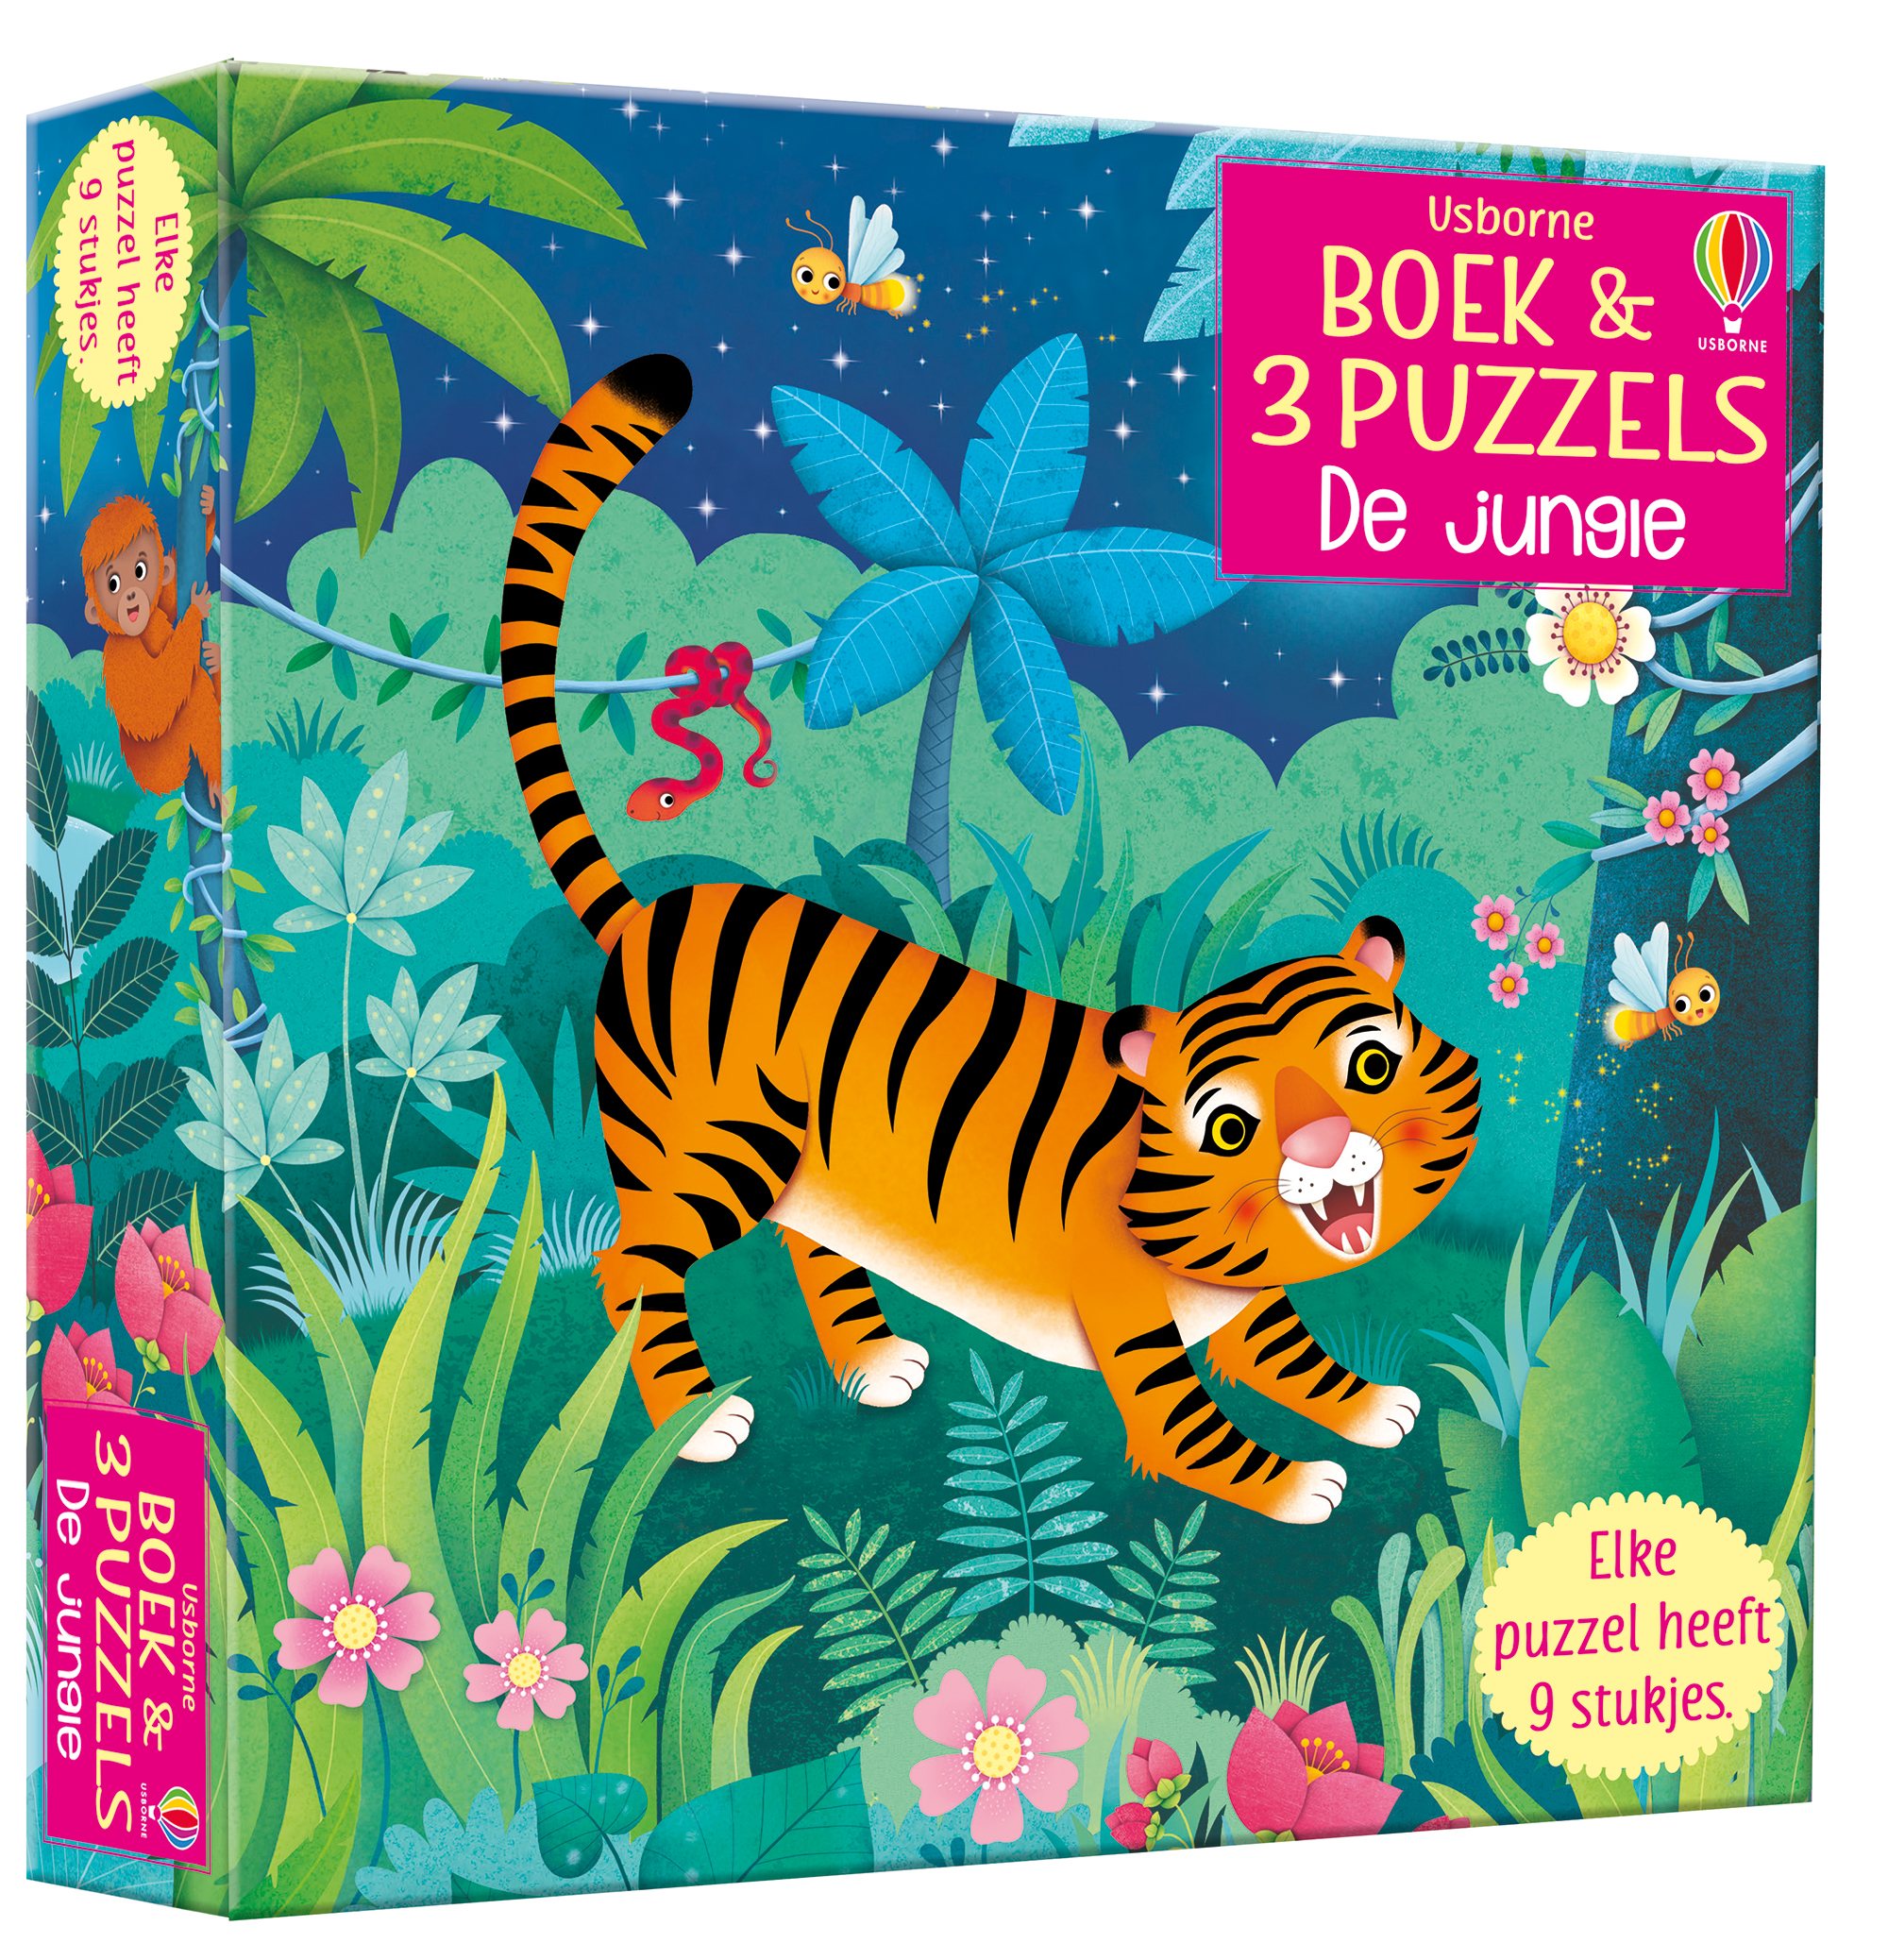 Boek & 3 Puzzels De jungle